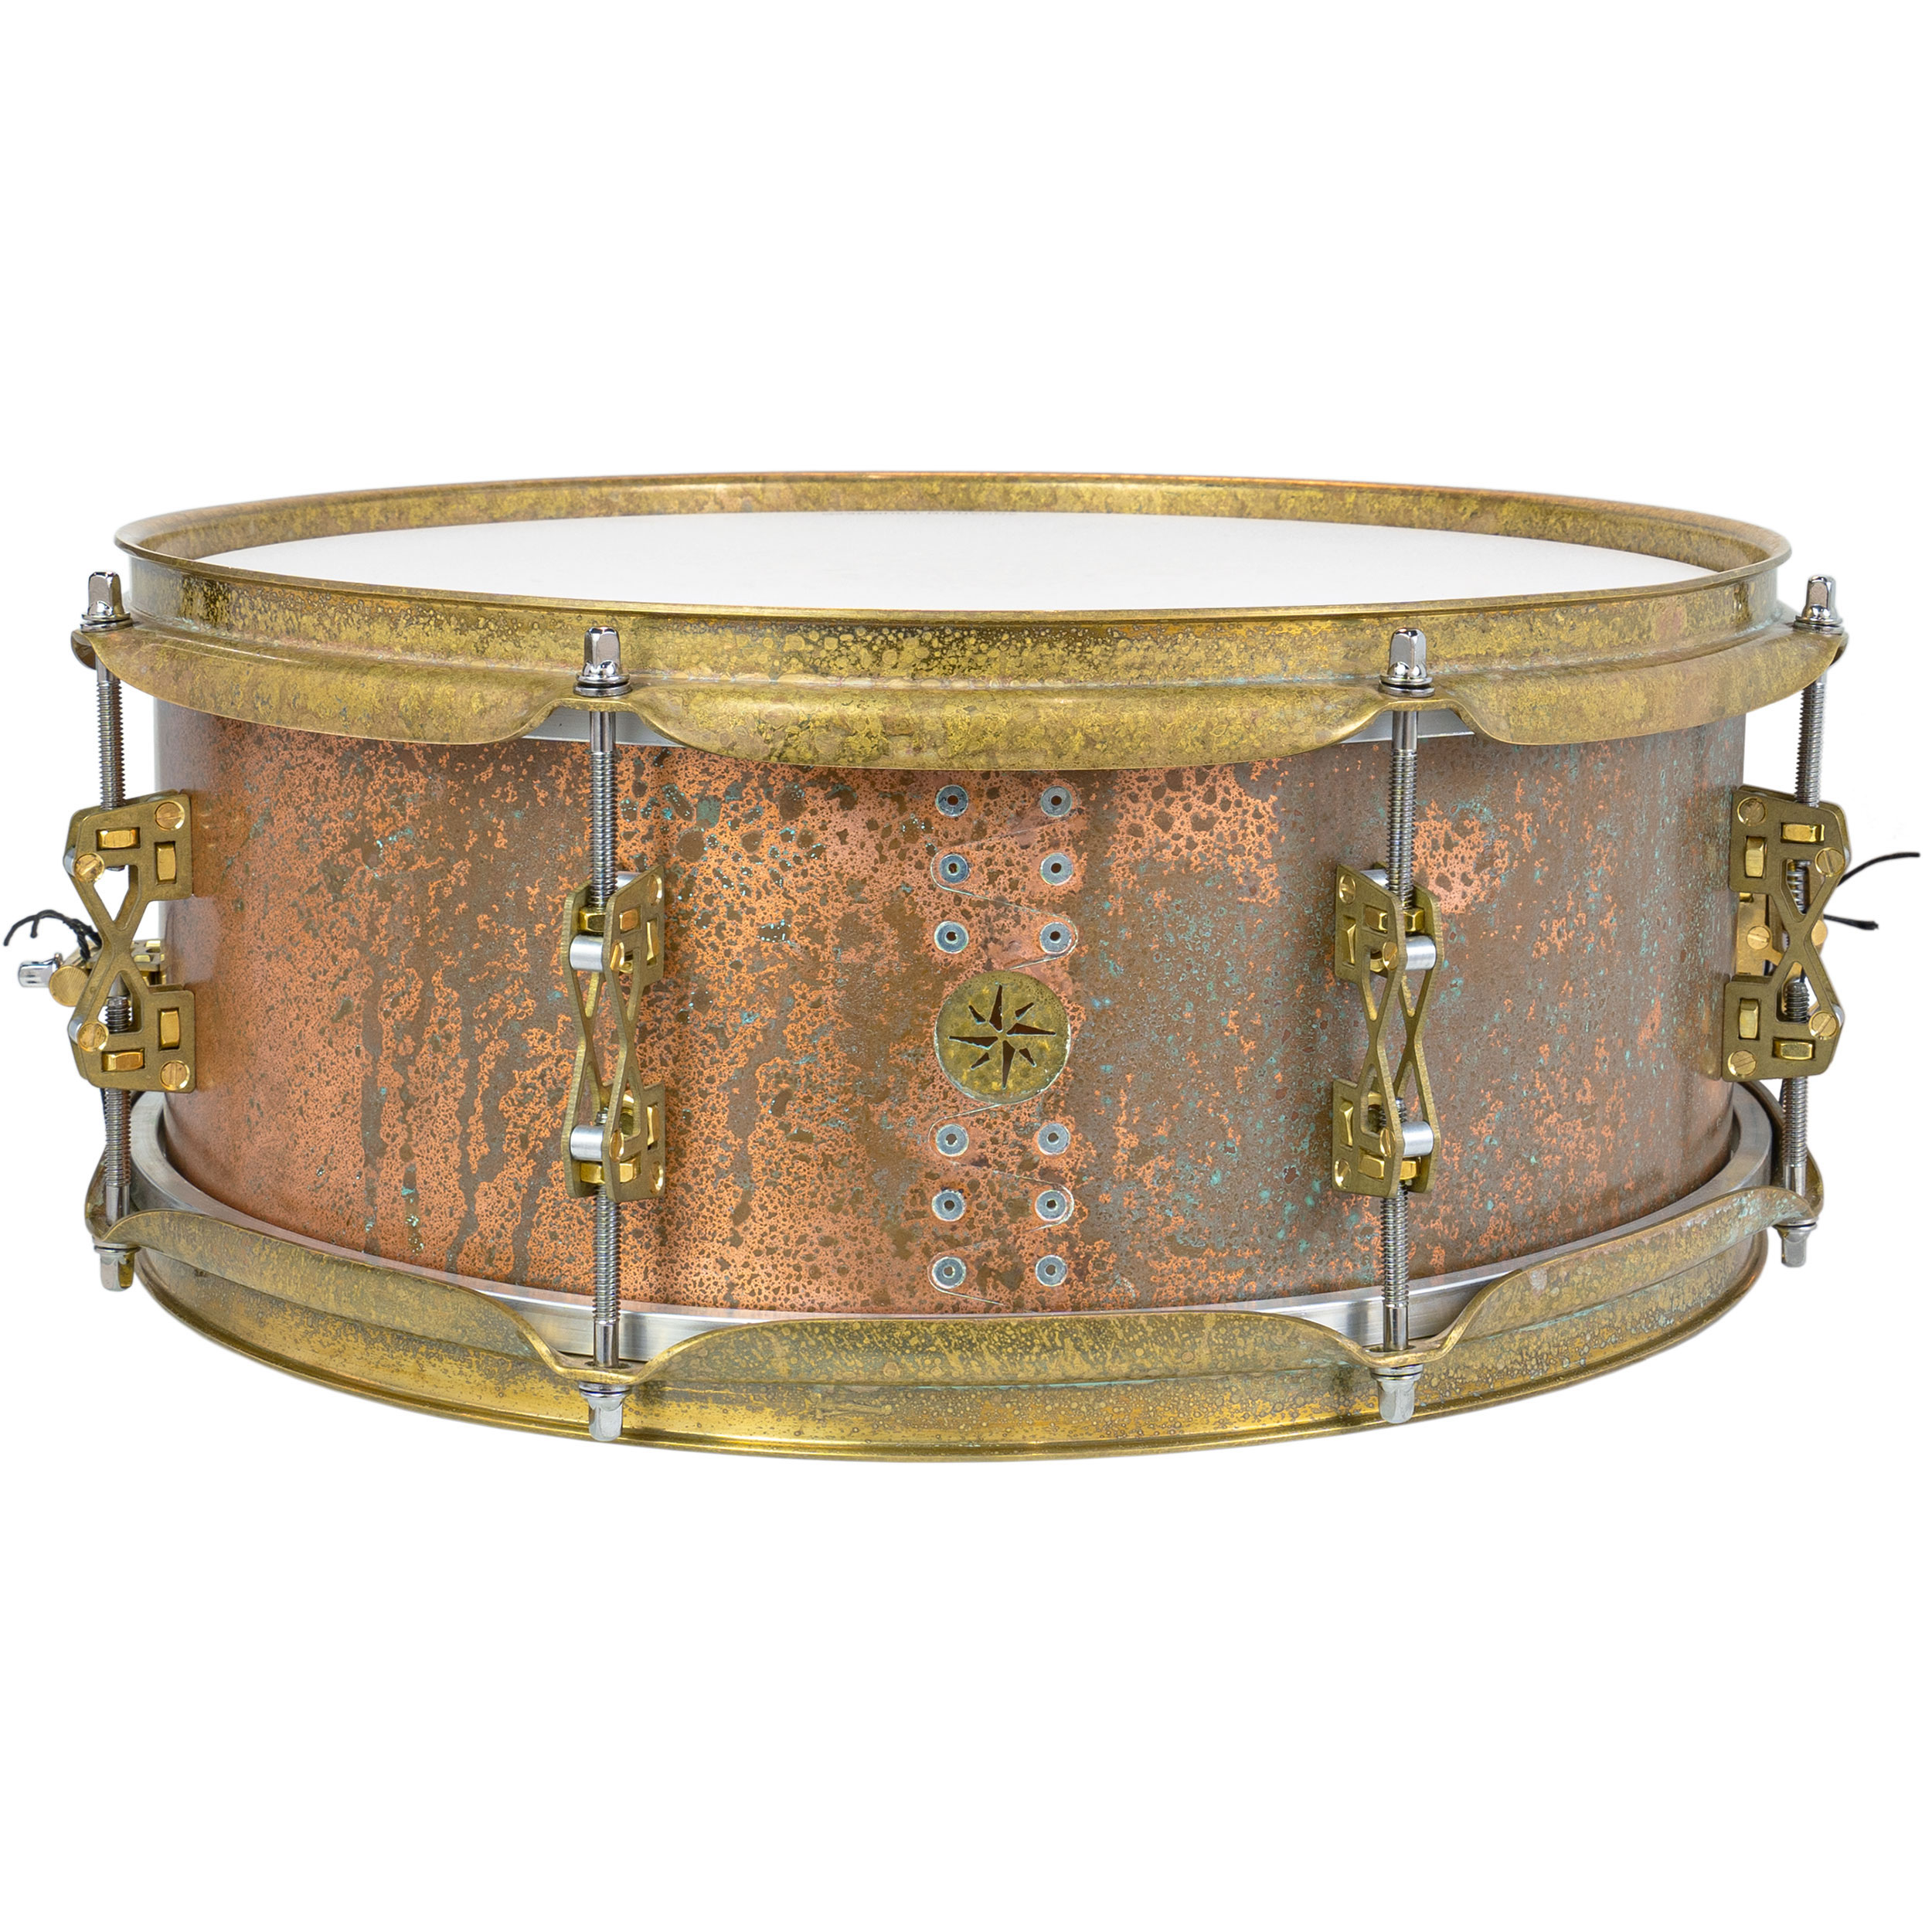 "Great Lakes Drum Co. 5.5"" x 14"" Copper Snare Drum (Demo)"